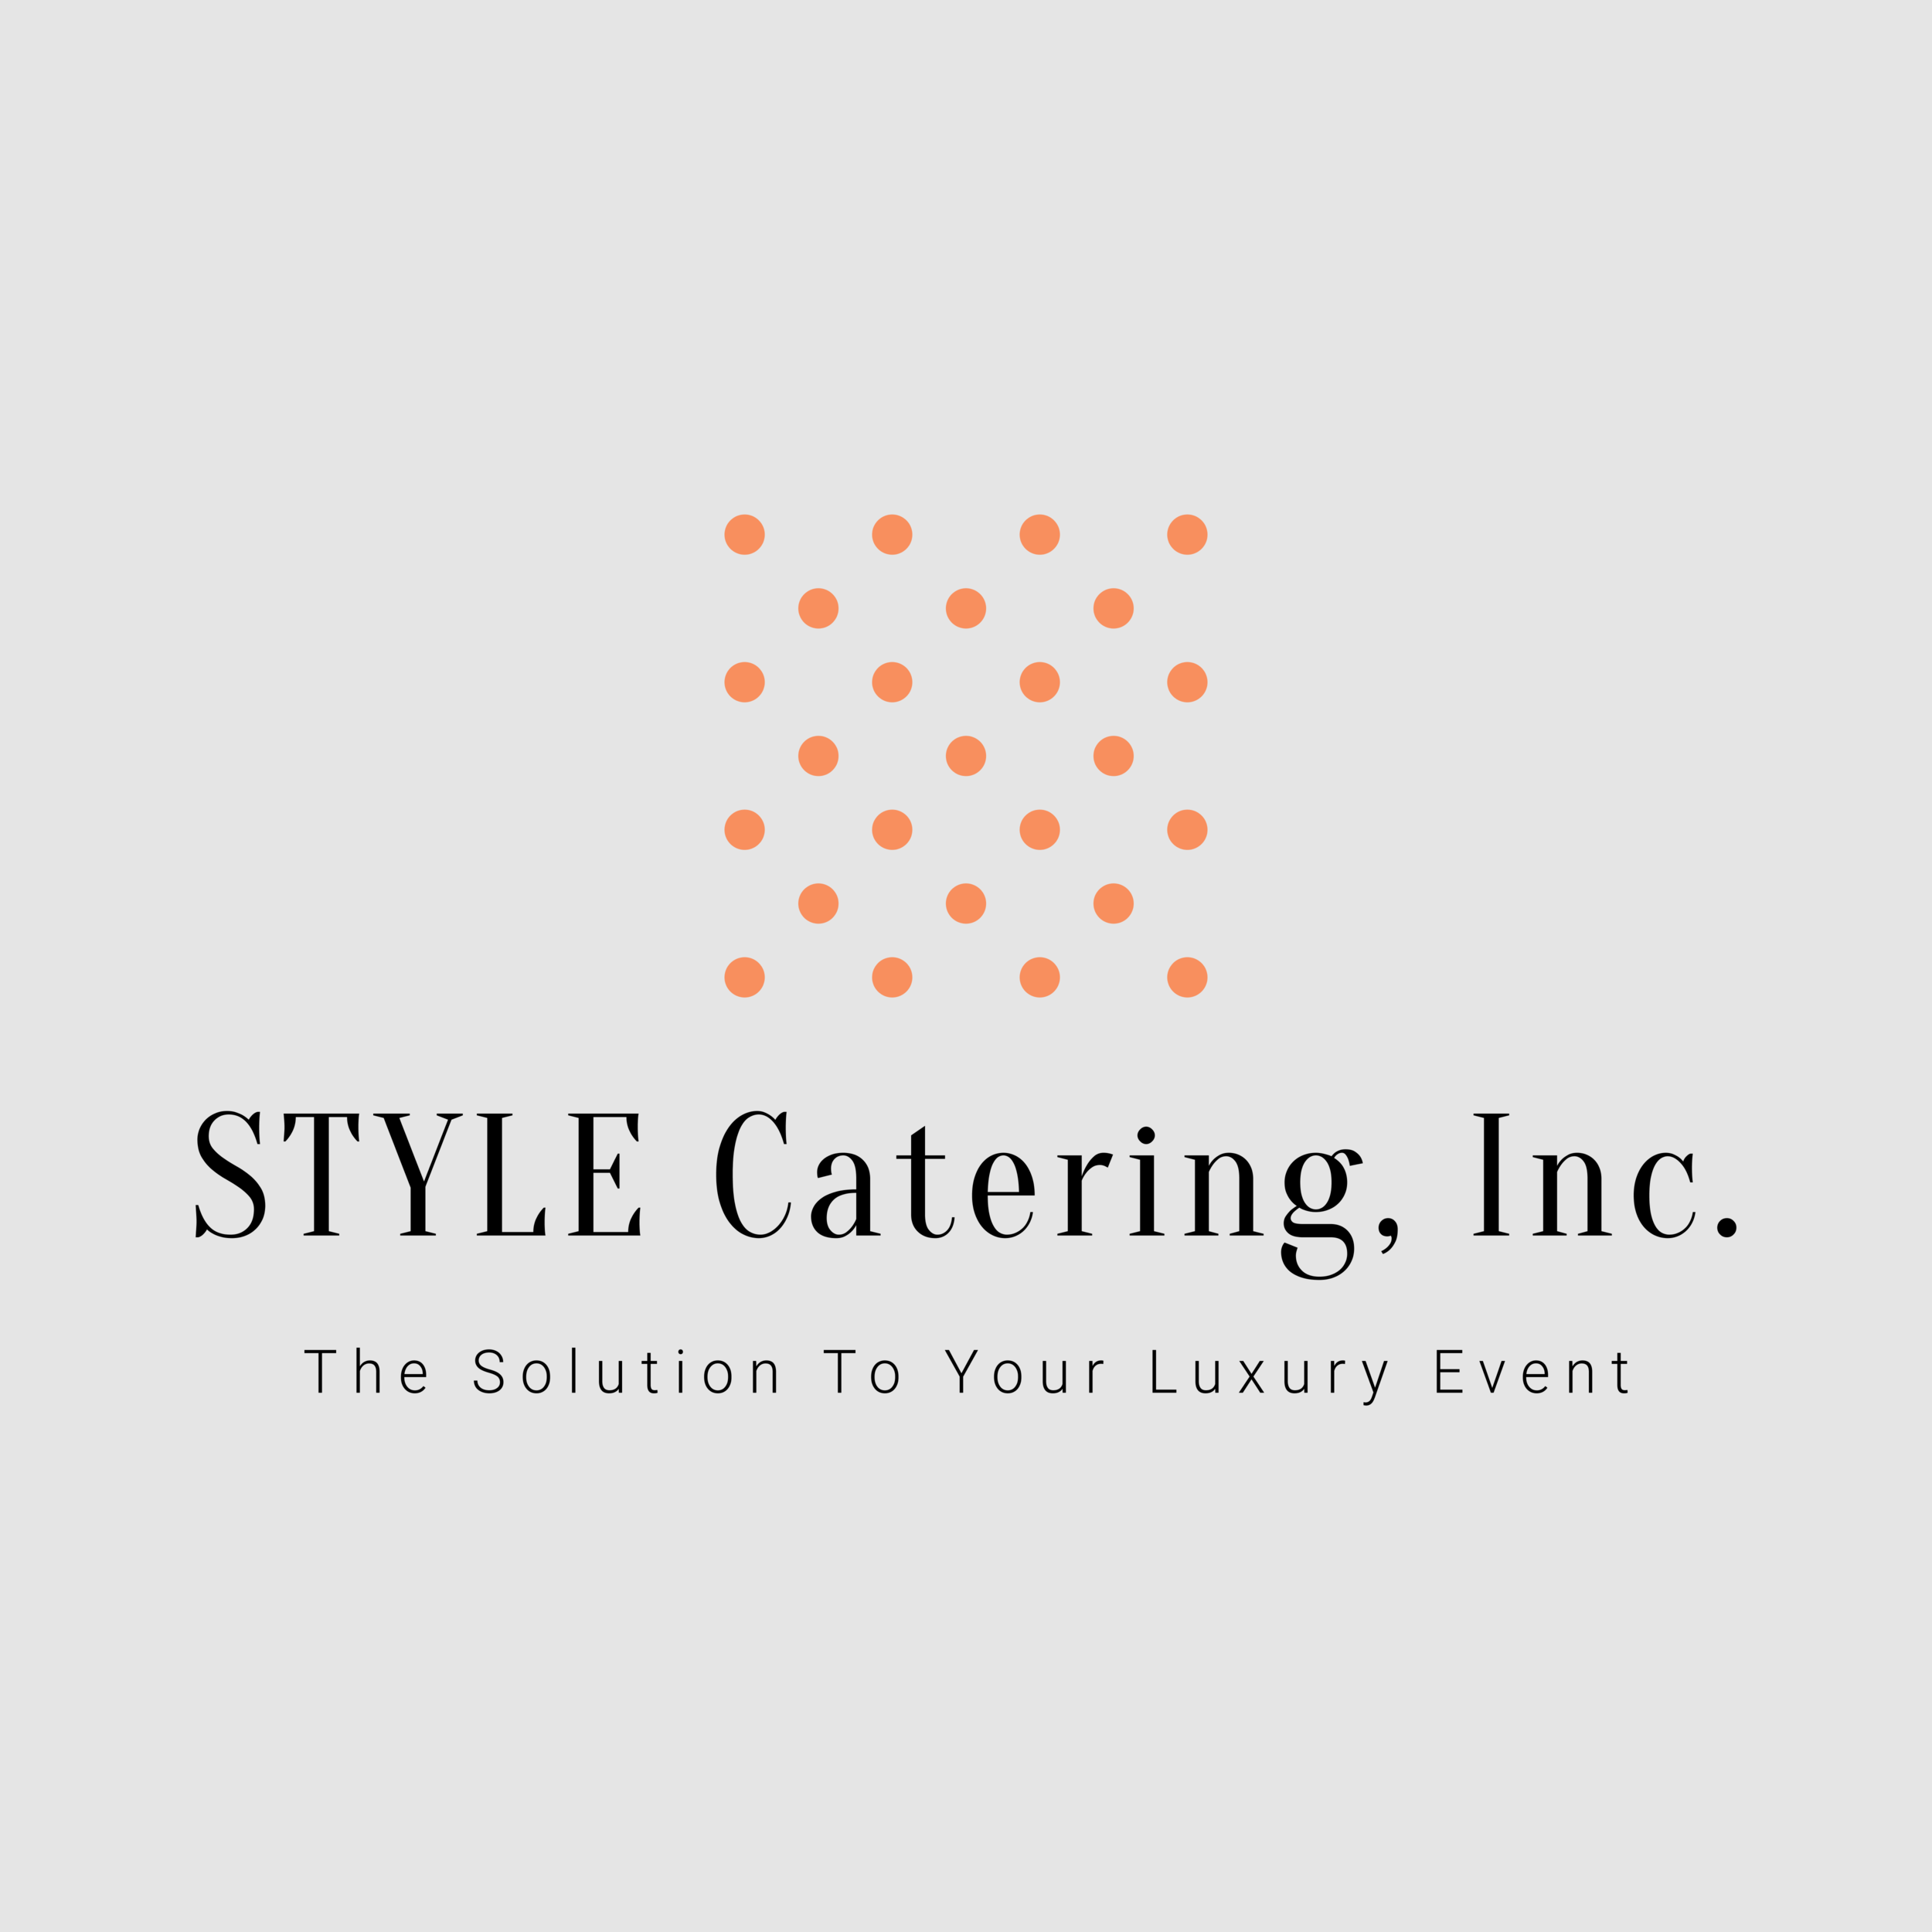 STYLE Catering